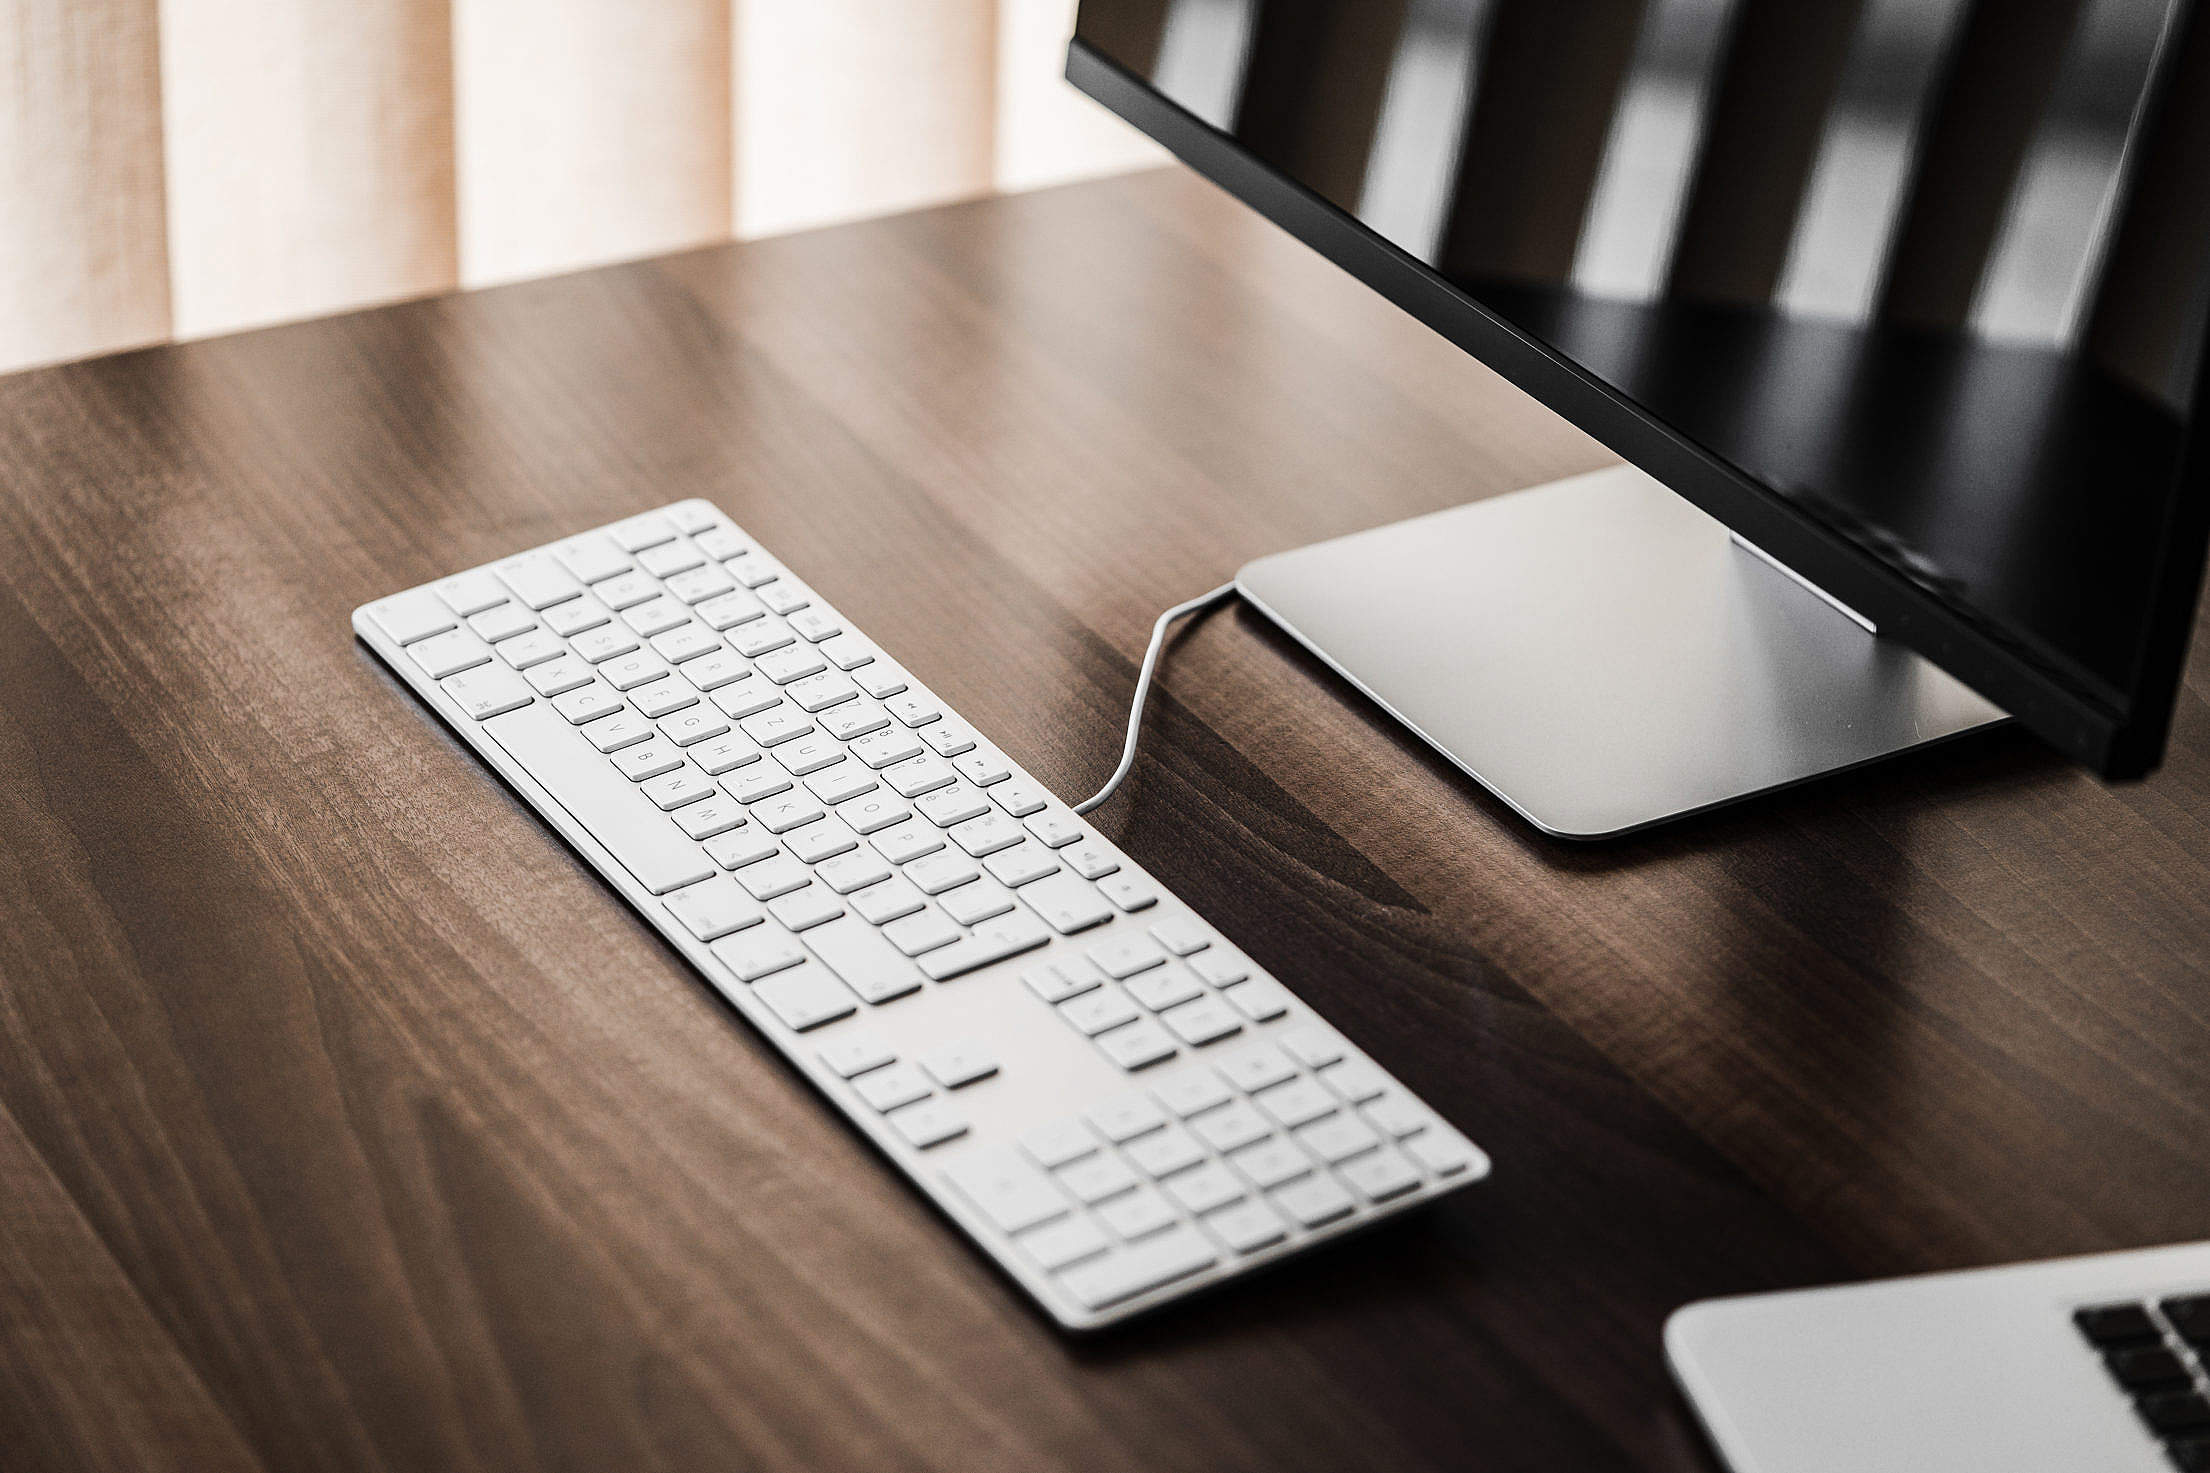 Download Clean Setup: Keyboard and Glossy Desktop Display Free Stock Photo